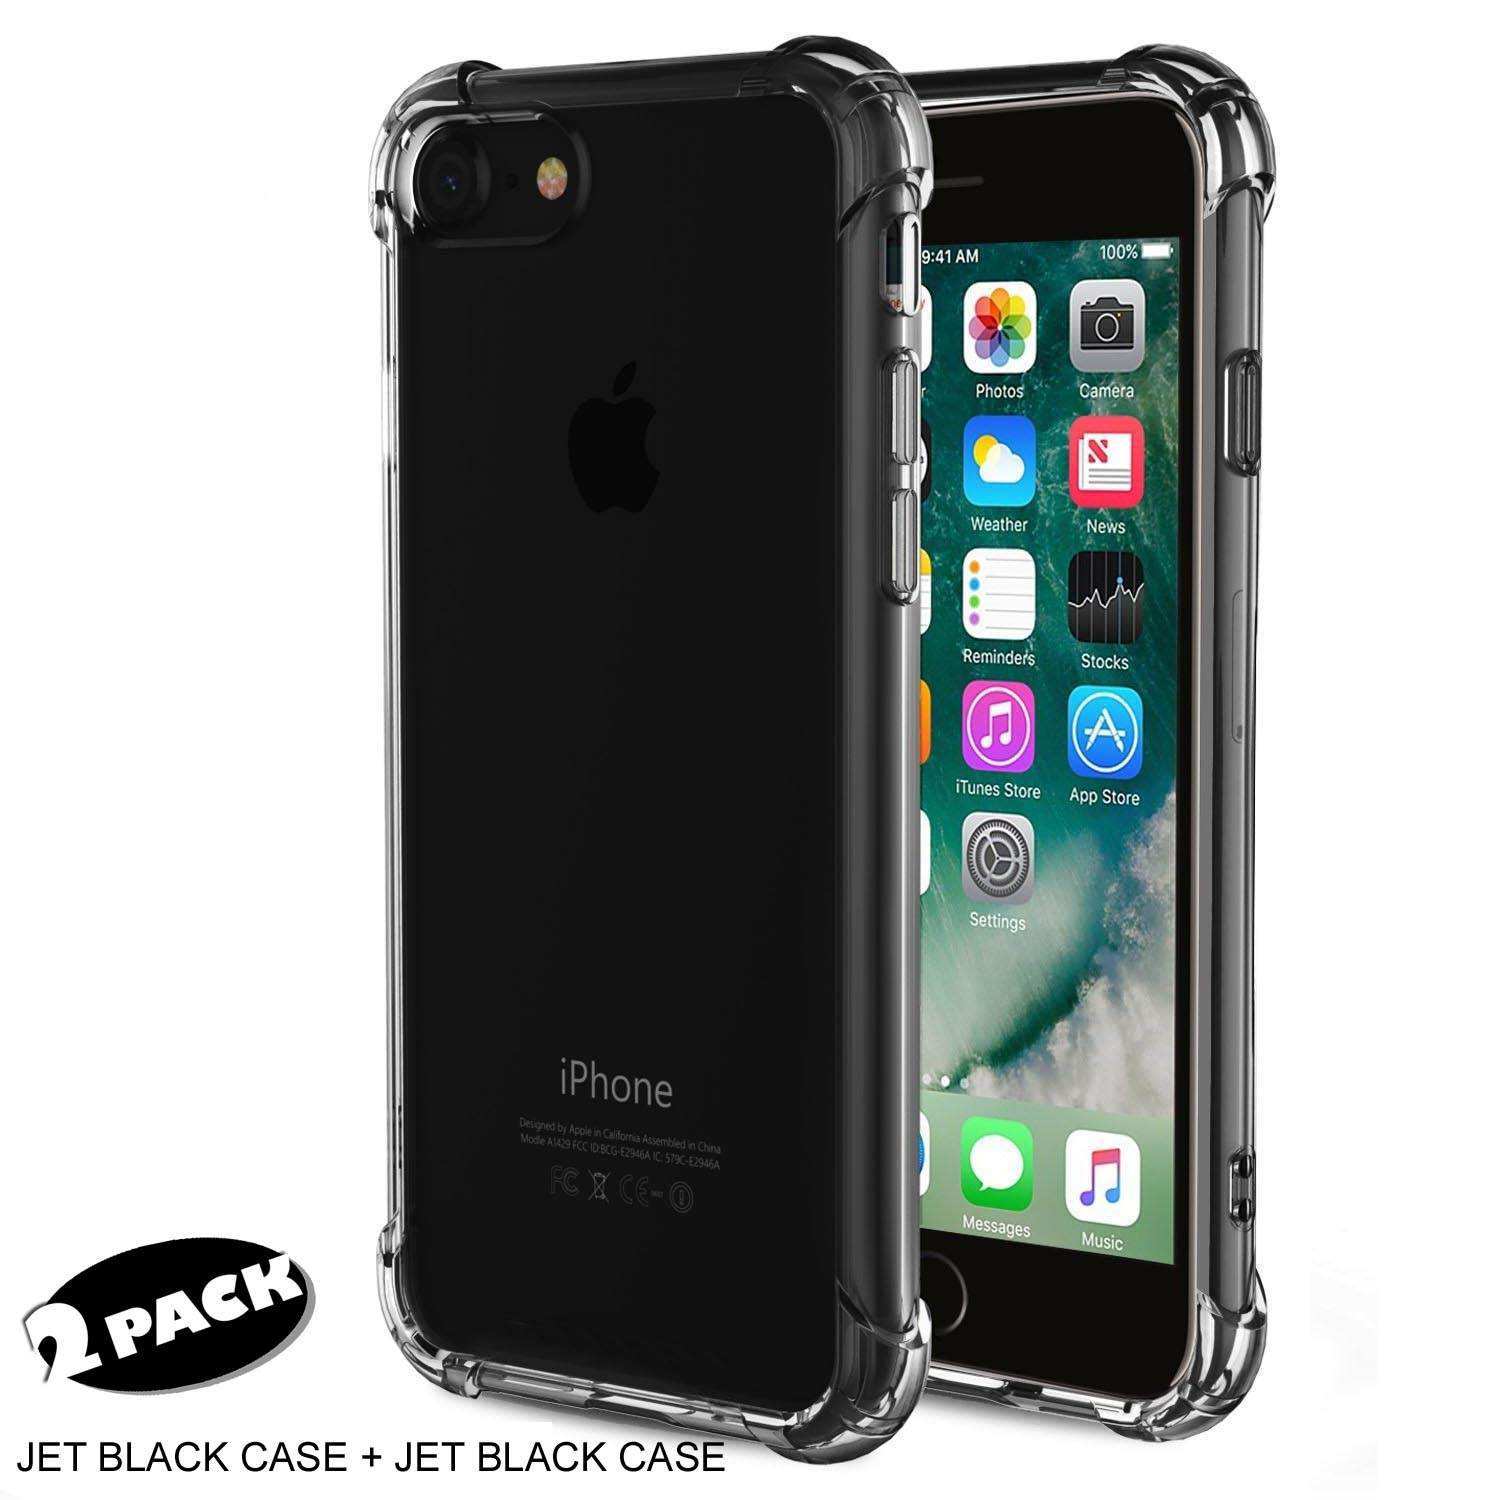 ME [2-Pack] Advanced Impact and Scratch Resistant Flexible TPU Slim Bumper Cases for iPhone 7